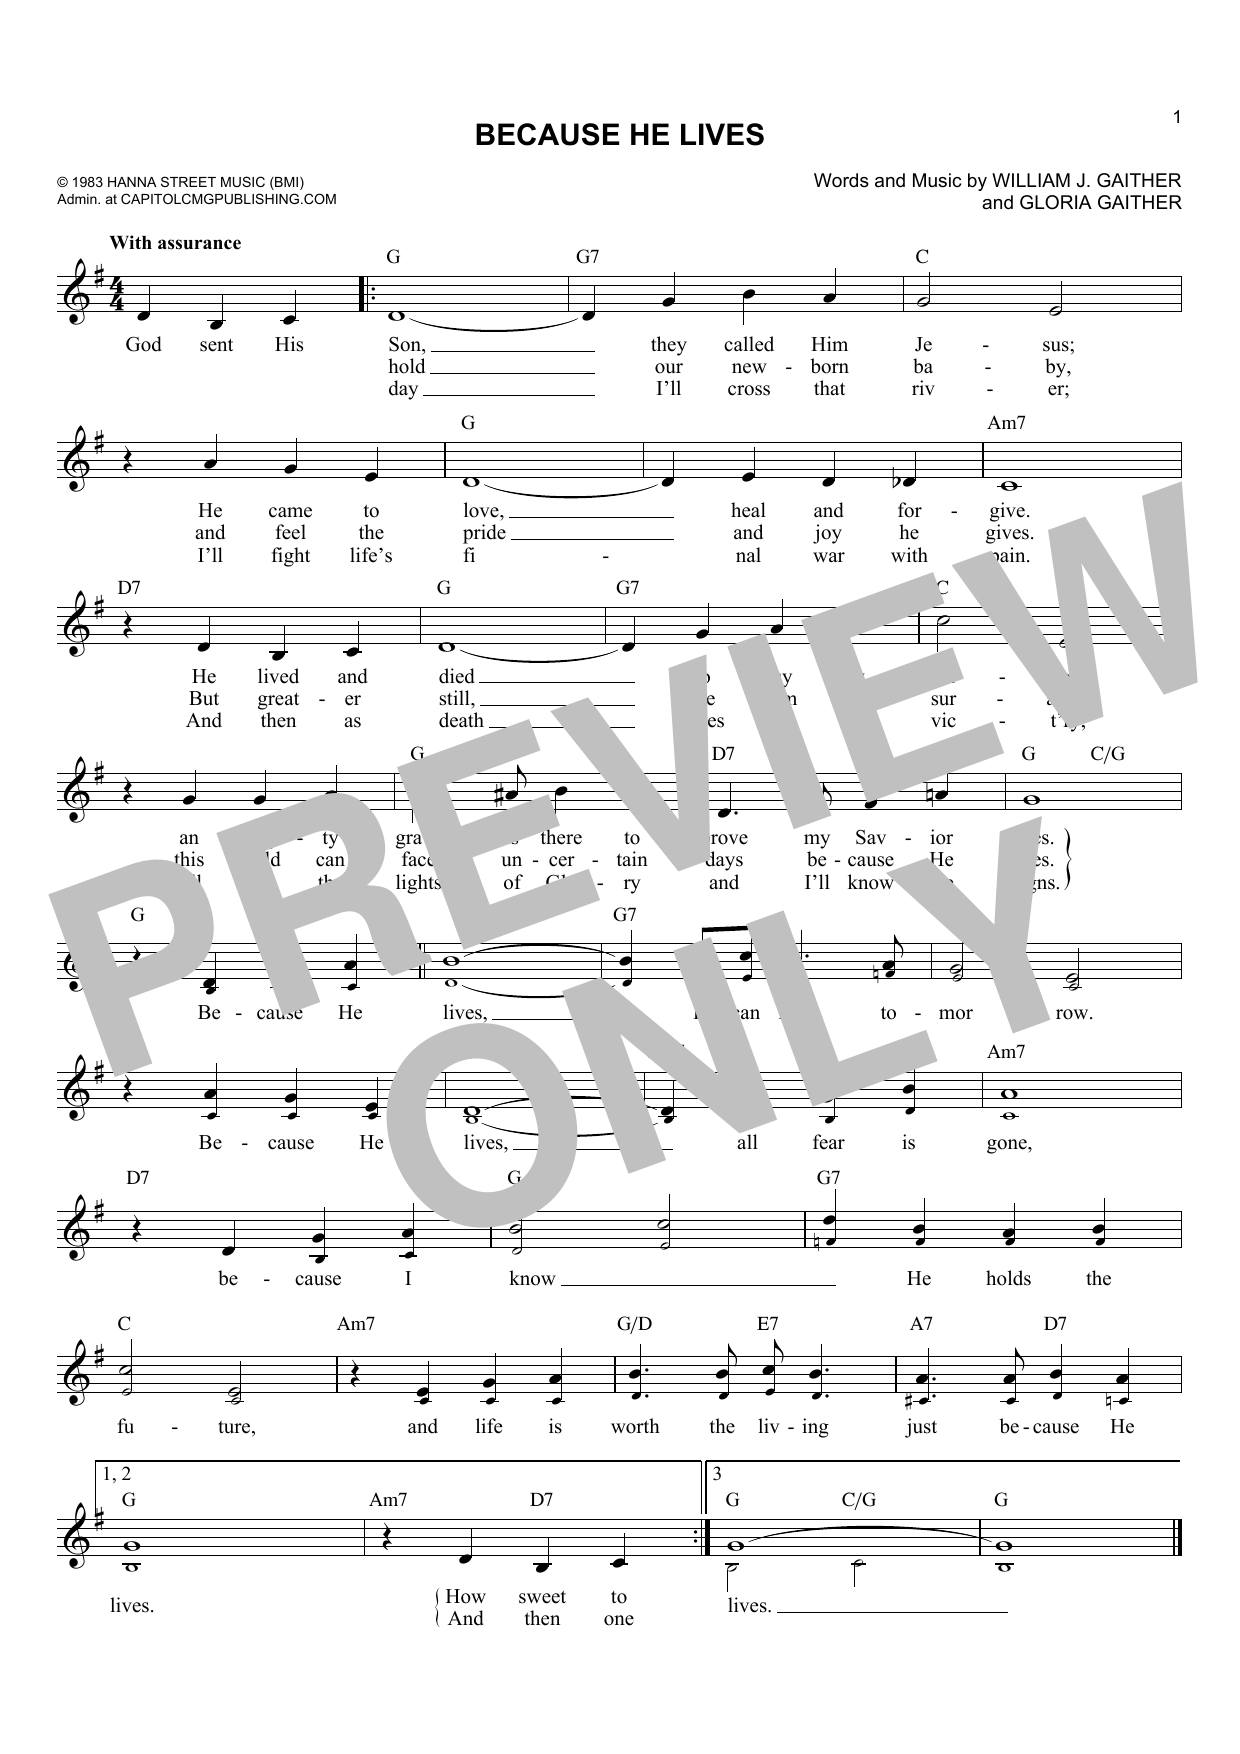 Gloria Gaither Because He Lives sheet music notes and chords. Download Printable PDF.